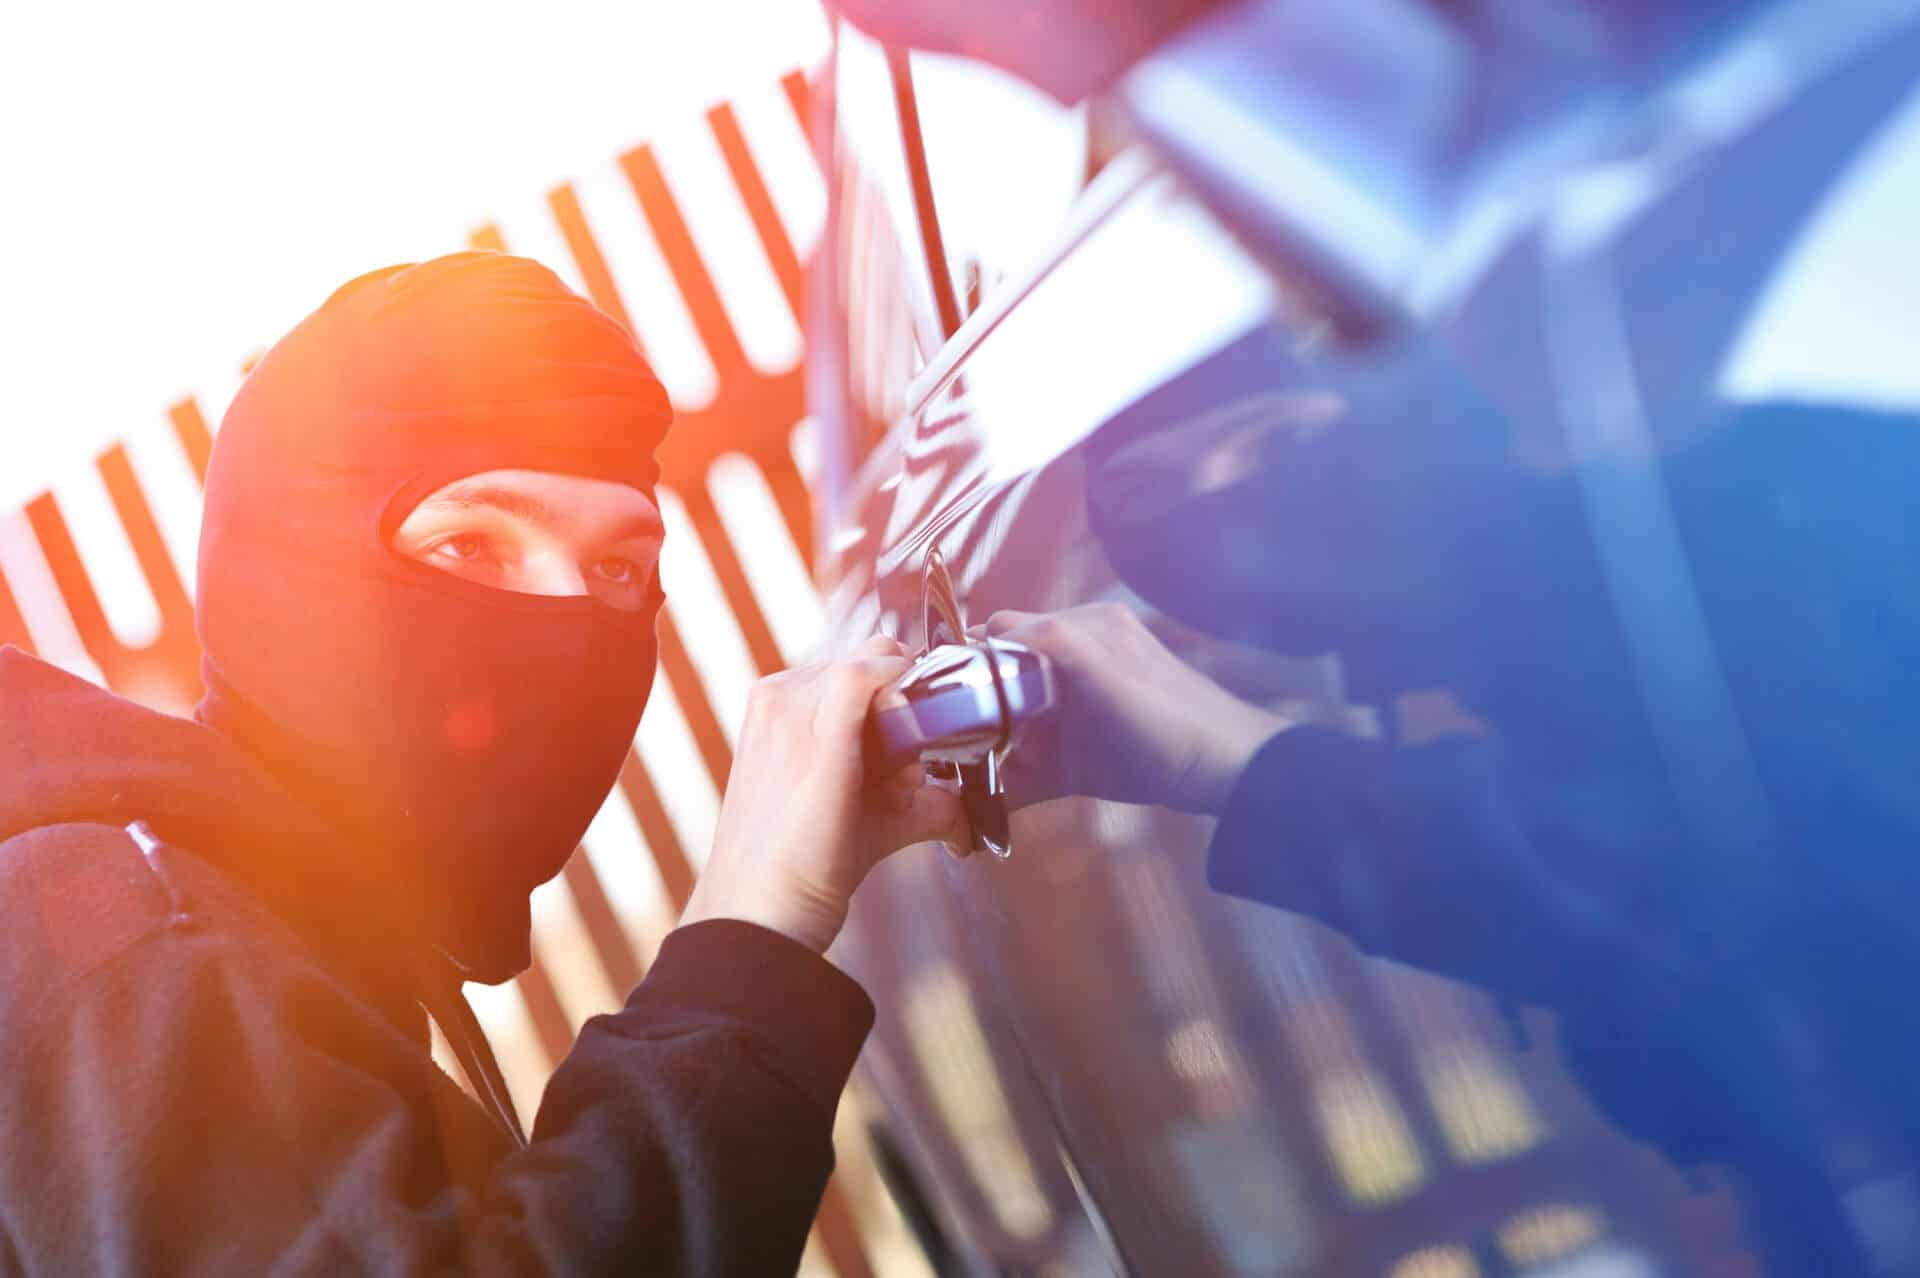 Types of Burglary Covered Under Texas Law